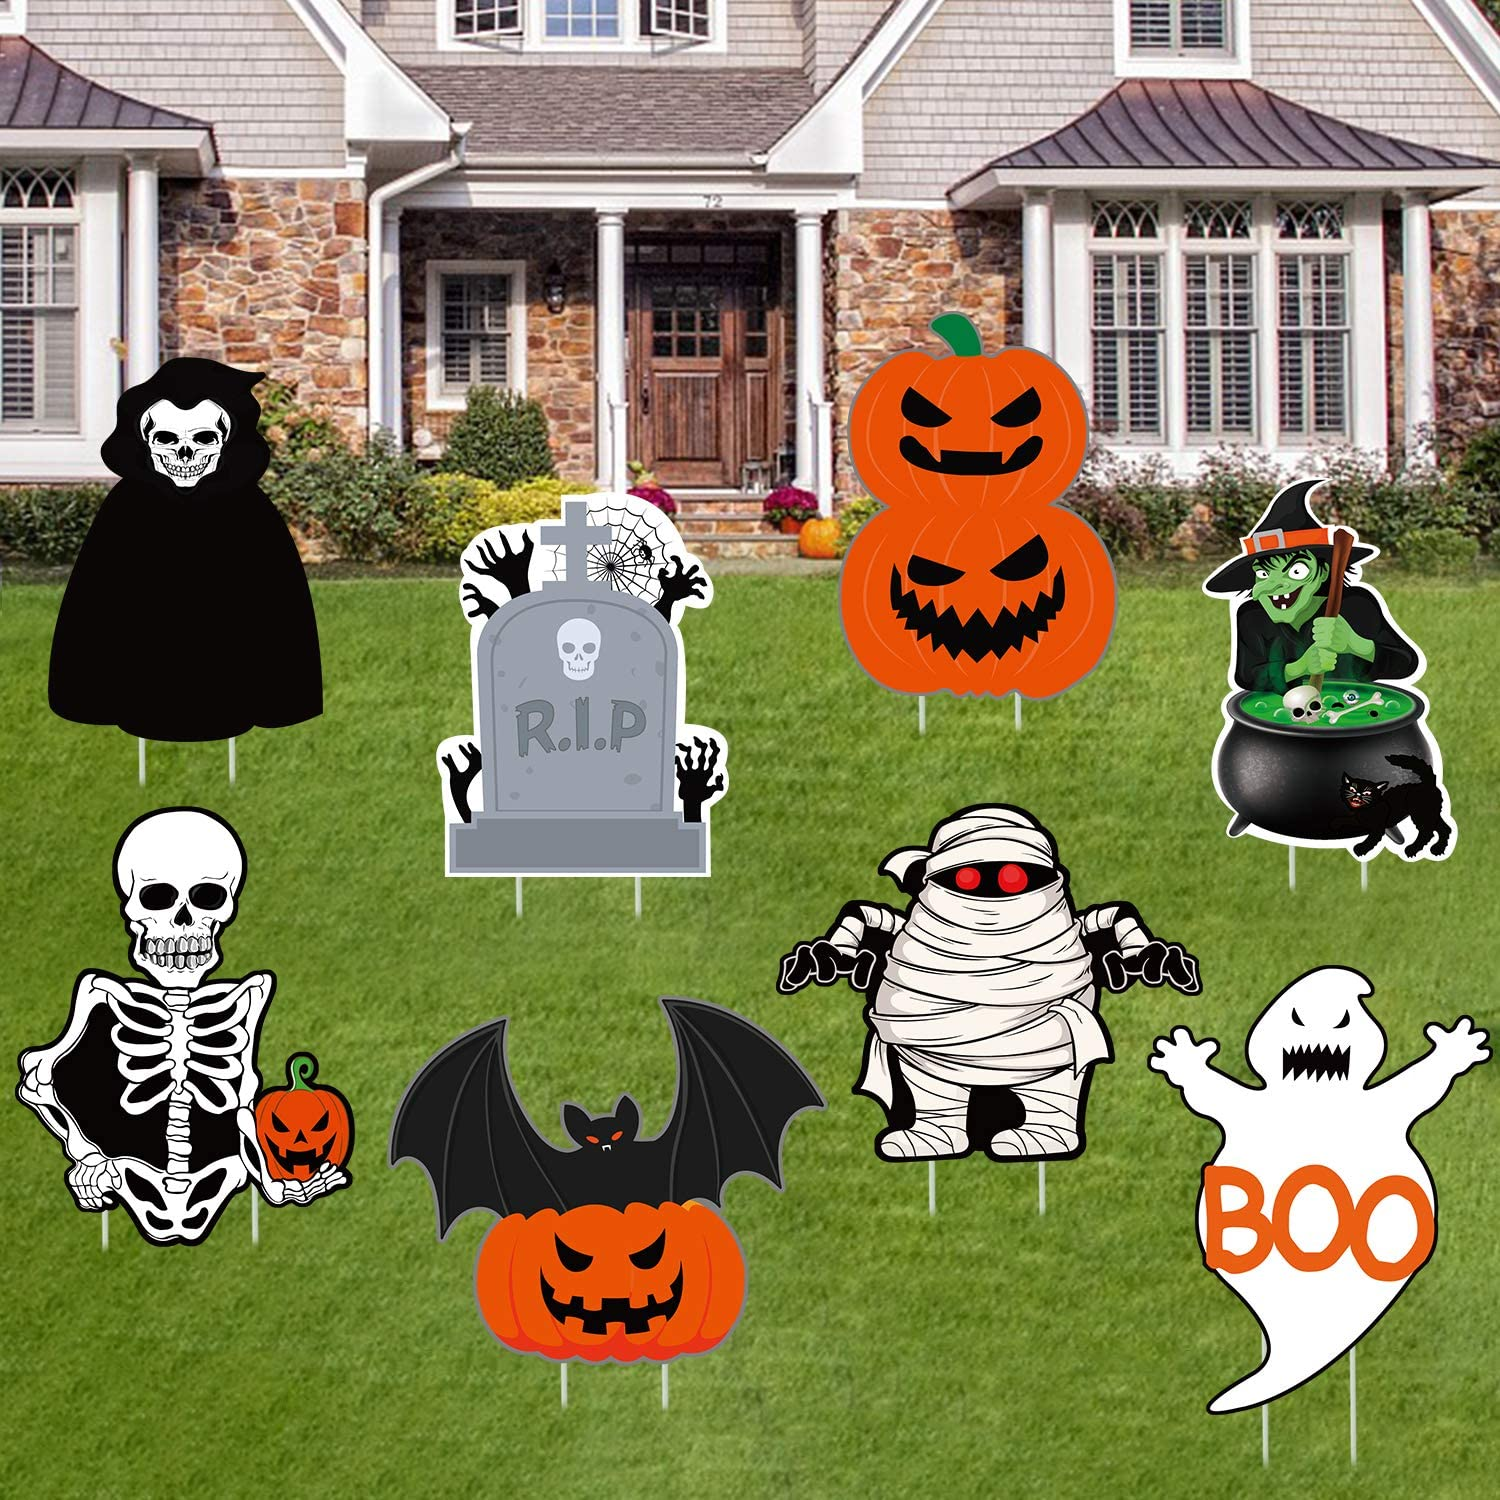 8Pcs Halloween Yard Signs Outdoor Lawn Decorations- Halloween Outdoor Decorations- Halloween Pumpkin Ghost Monster Yard Sign- Spooky Halloween Corrugated Yard Signs with Stakes- Halloween Outdoor Sign